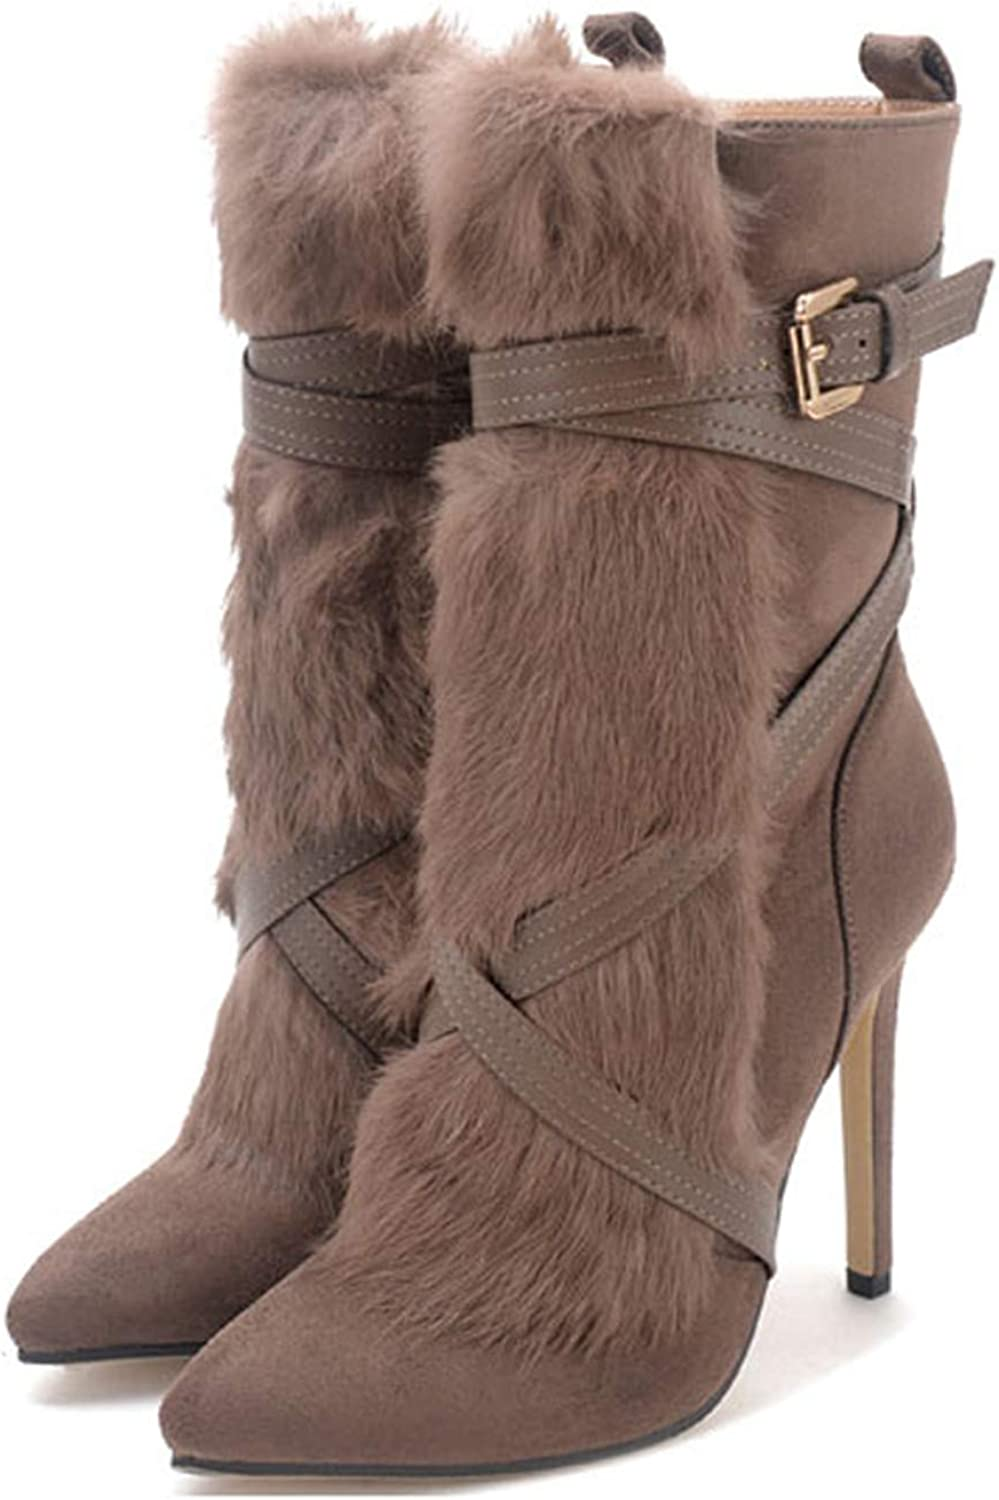 Kongsta New Suede Rabbit Fur Woman shoes Cross-Tied Pointed Toe Zipper Warm Fashion High Heels Sexy Ankle Boots Size 35-40